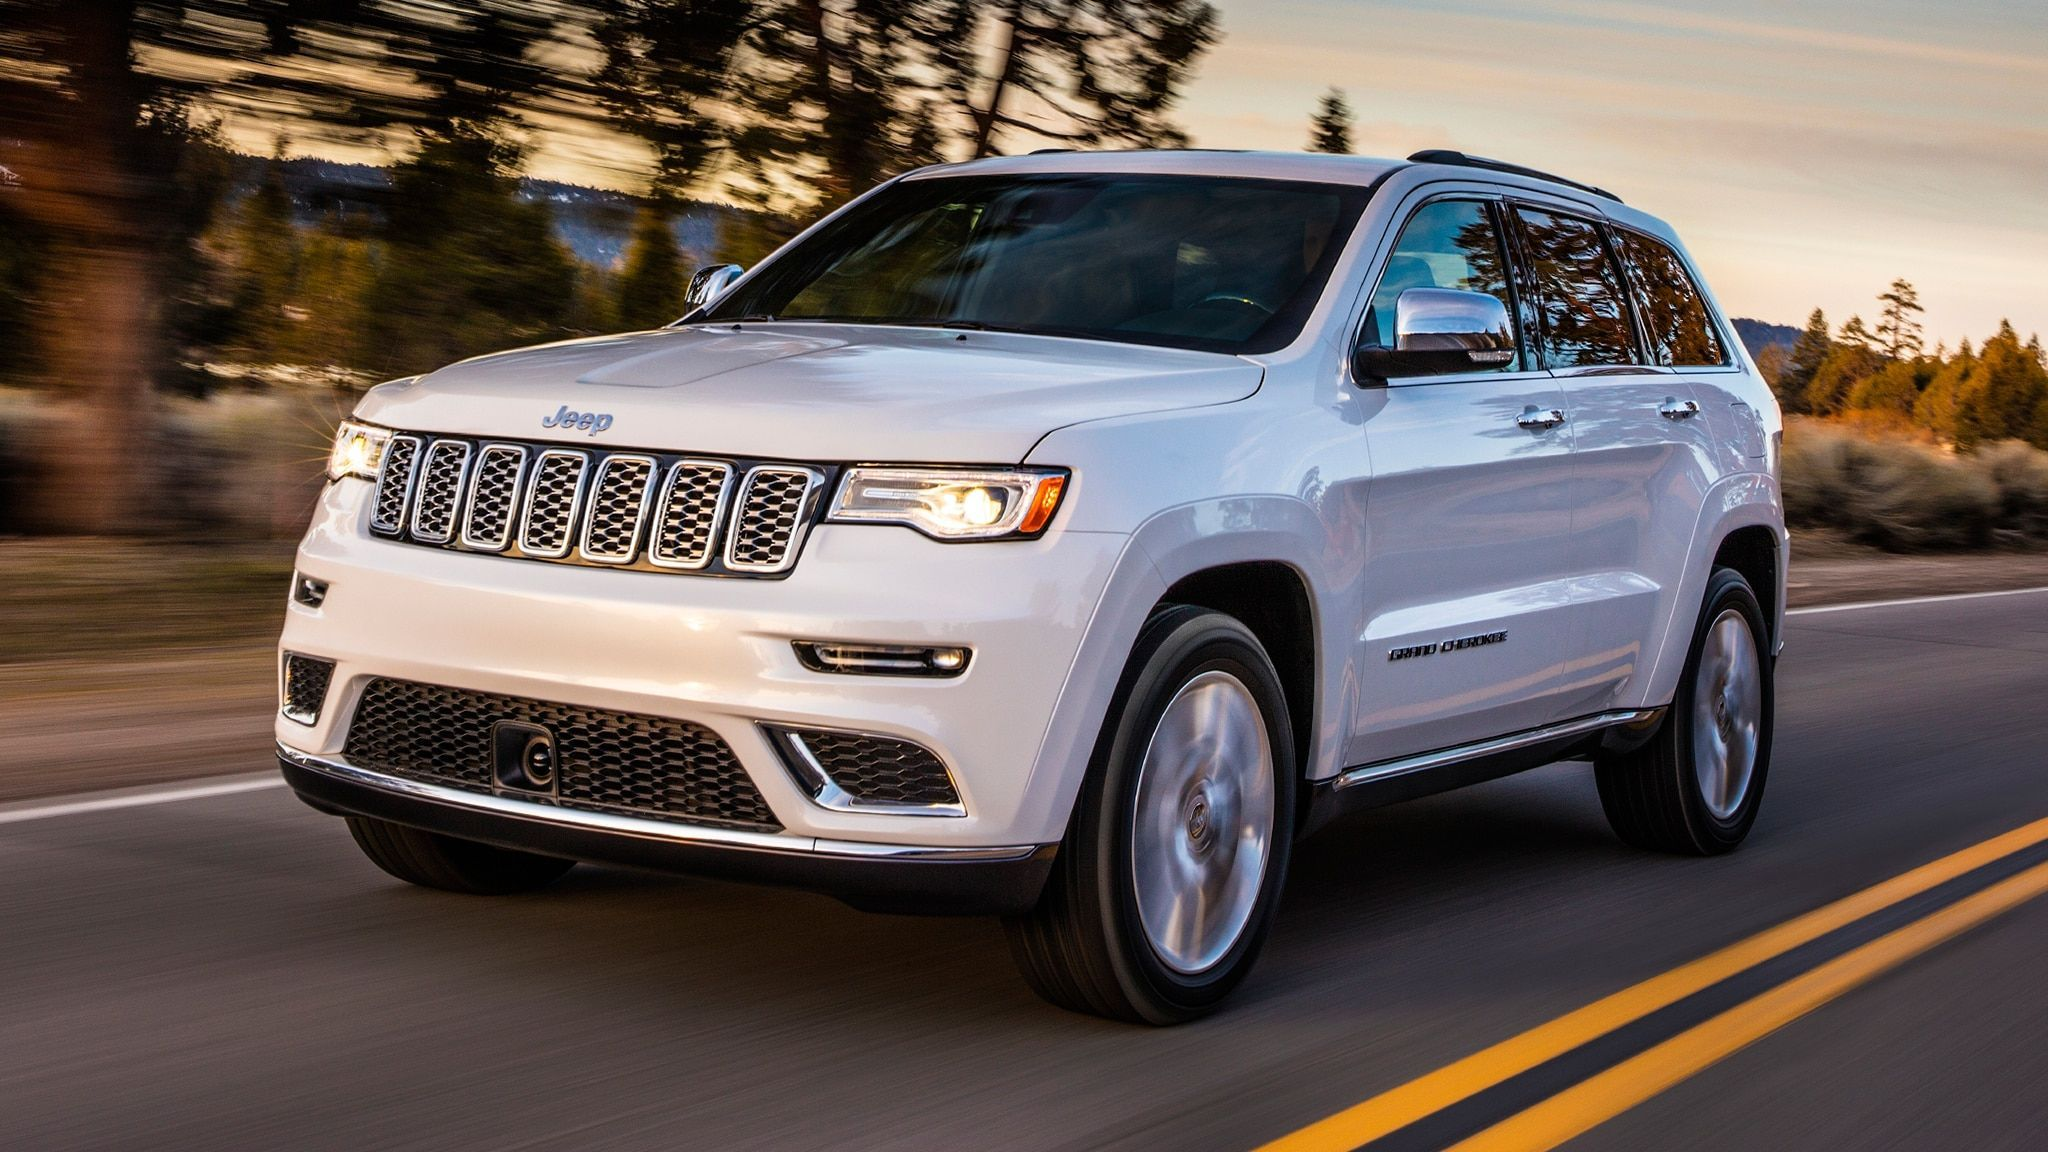 2020 Jeep Grand Cherokee Summit 5 Cool Things About Jeep S Most Premium Luxury Suv Your Family S Car S 2017 Jeep Grand Cherokee Suv Cars Jeep Grand Cherokee